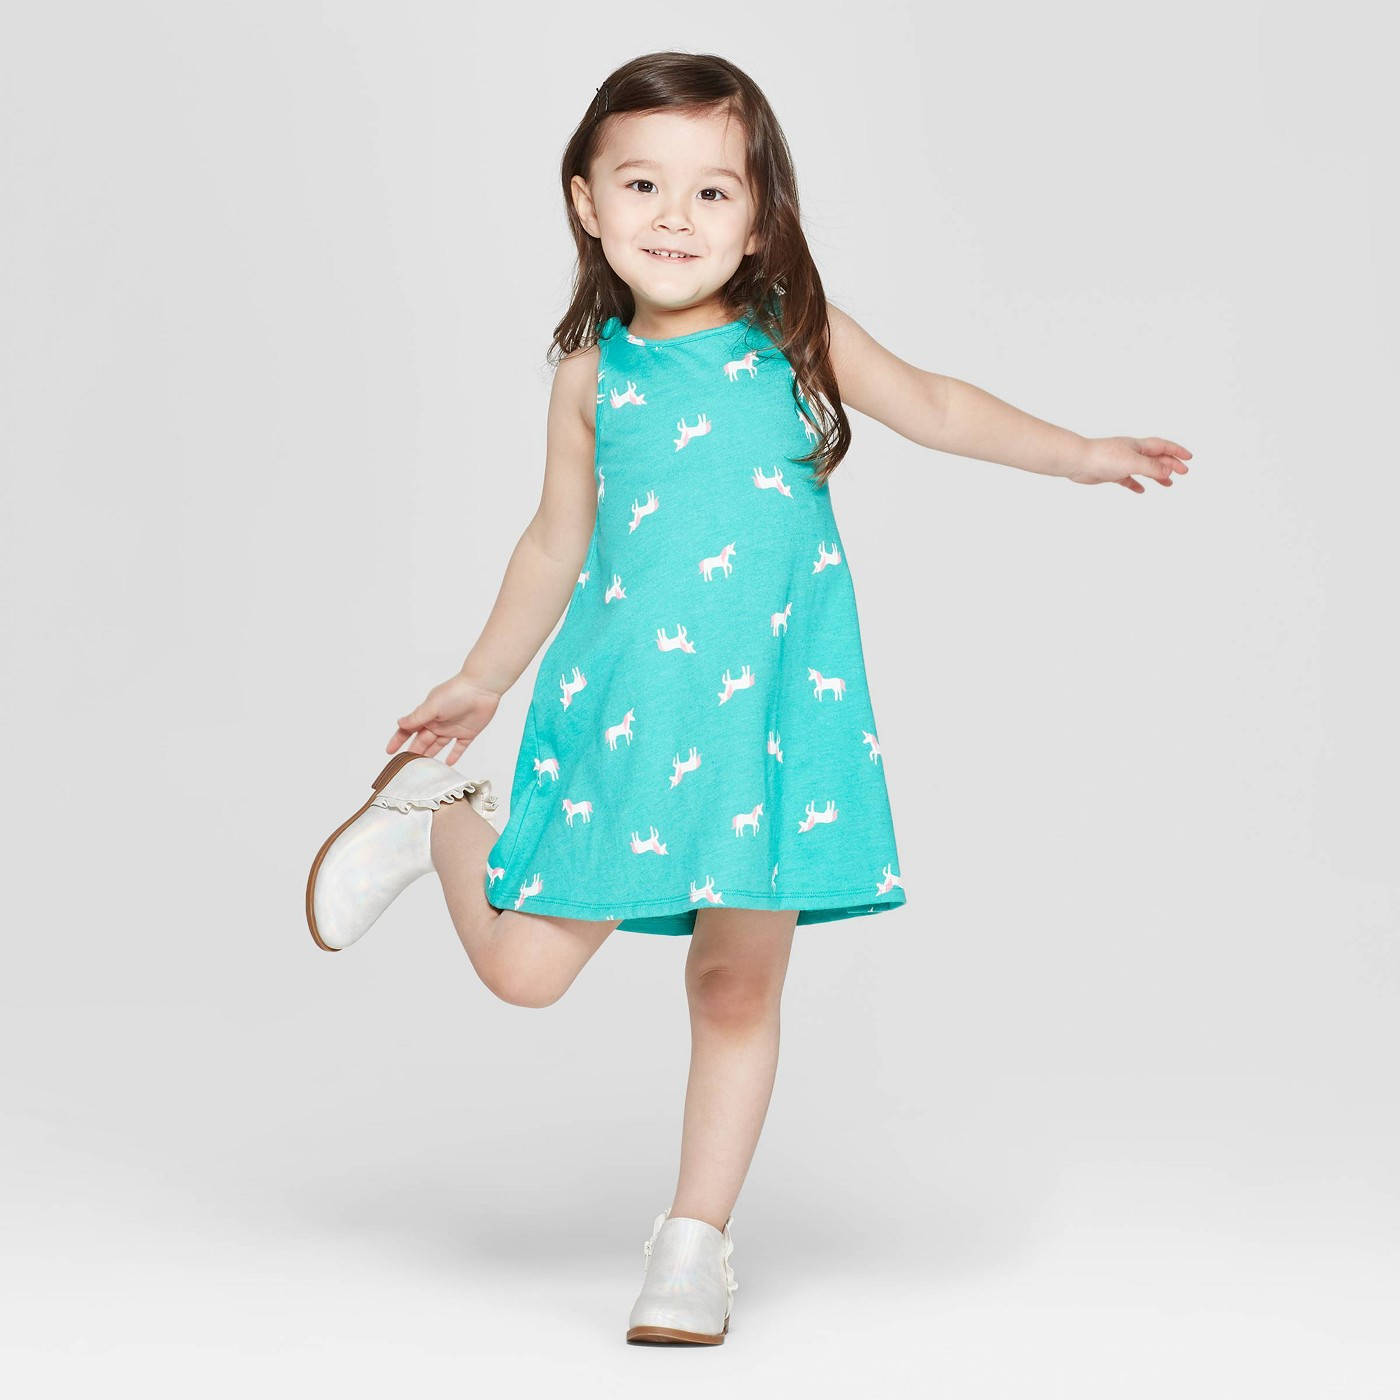 Toddler Girls' 'Unicorn' A Line Dress - Cat & Jack™ Aqua - image 1 of 3